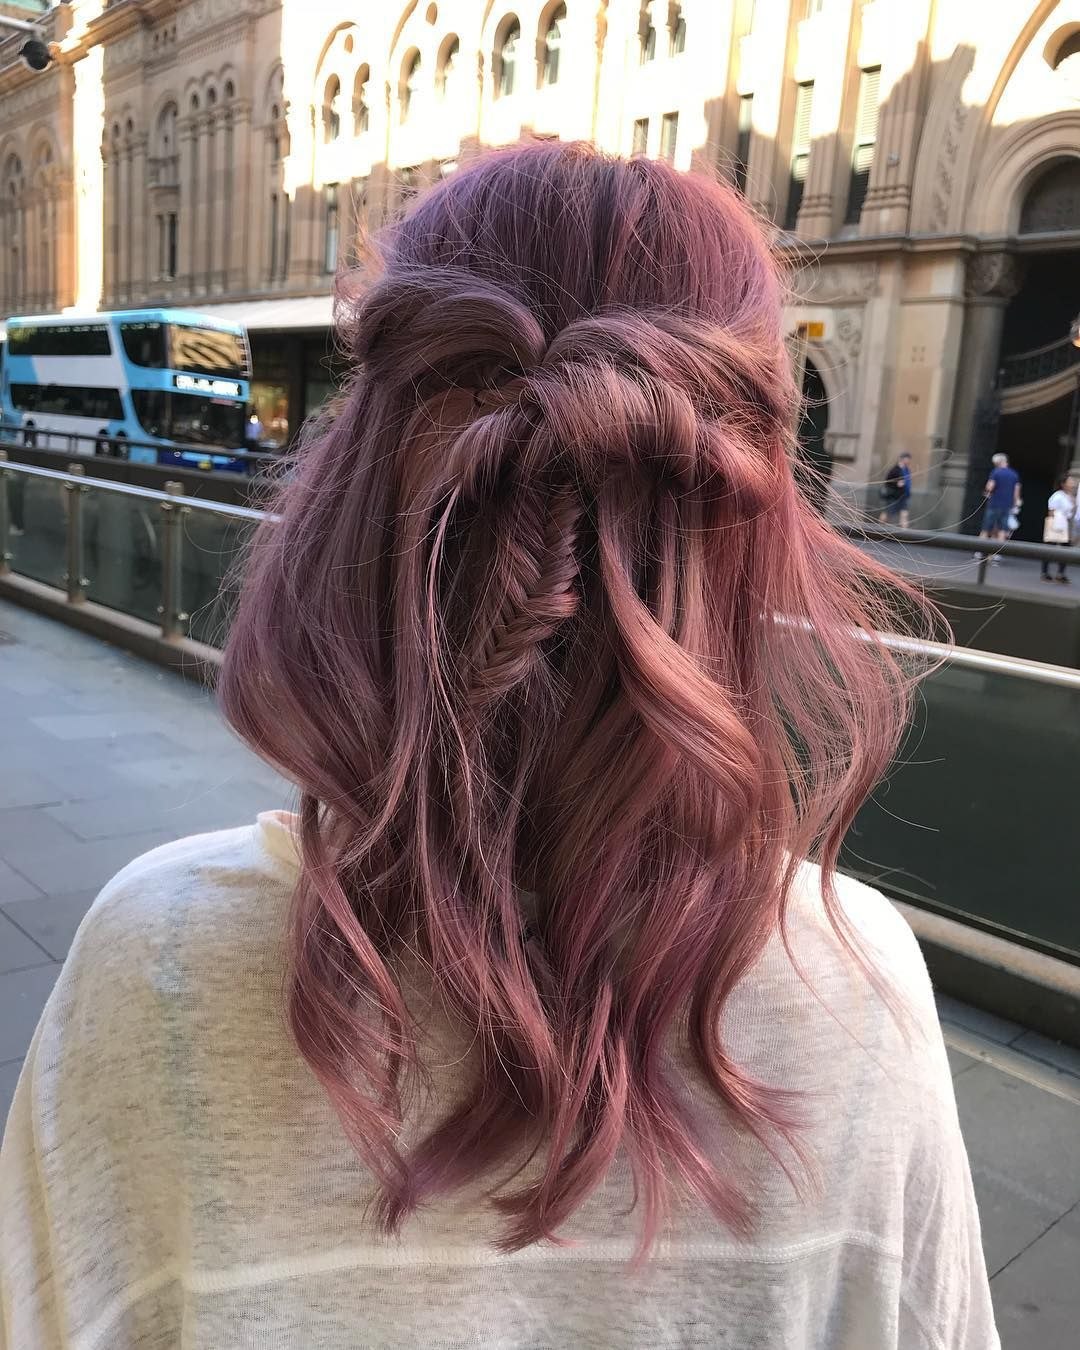 fishtail with smooth shiny waves hairstyle in pretty hair